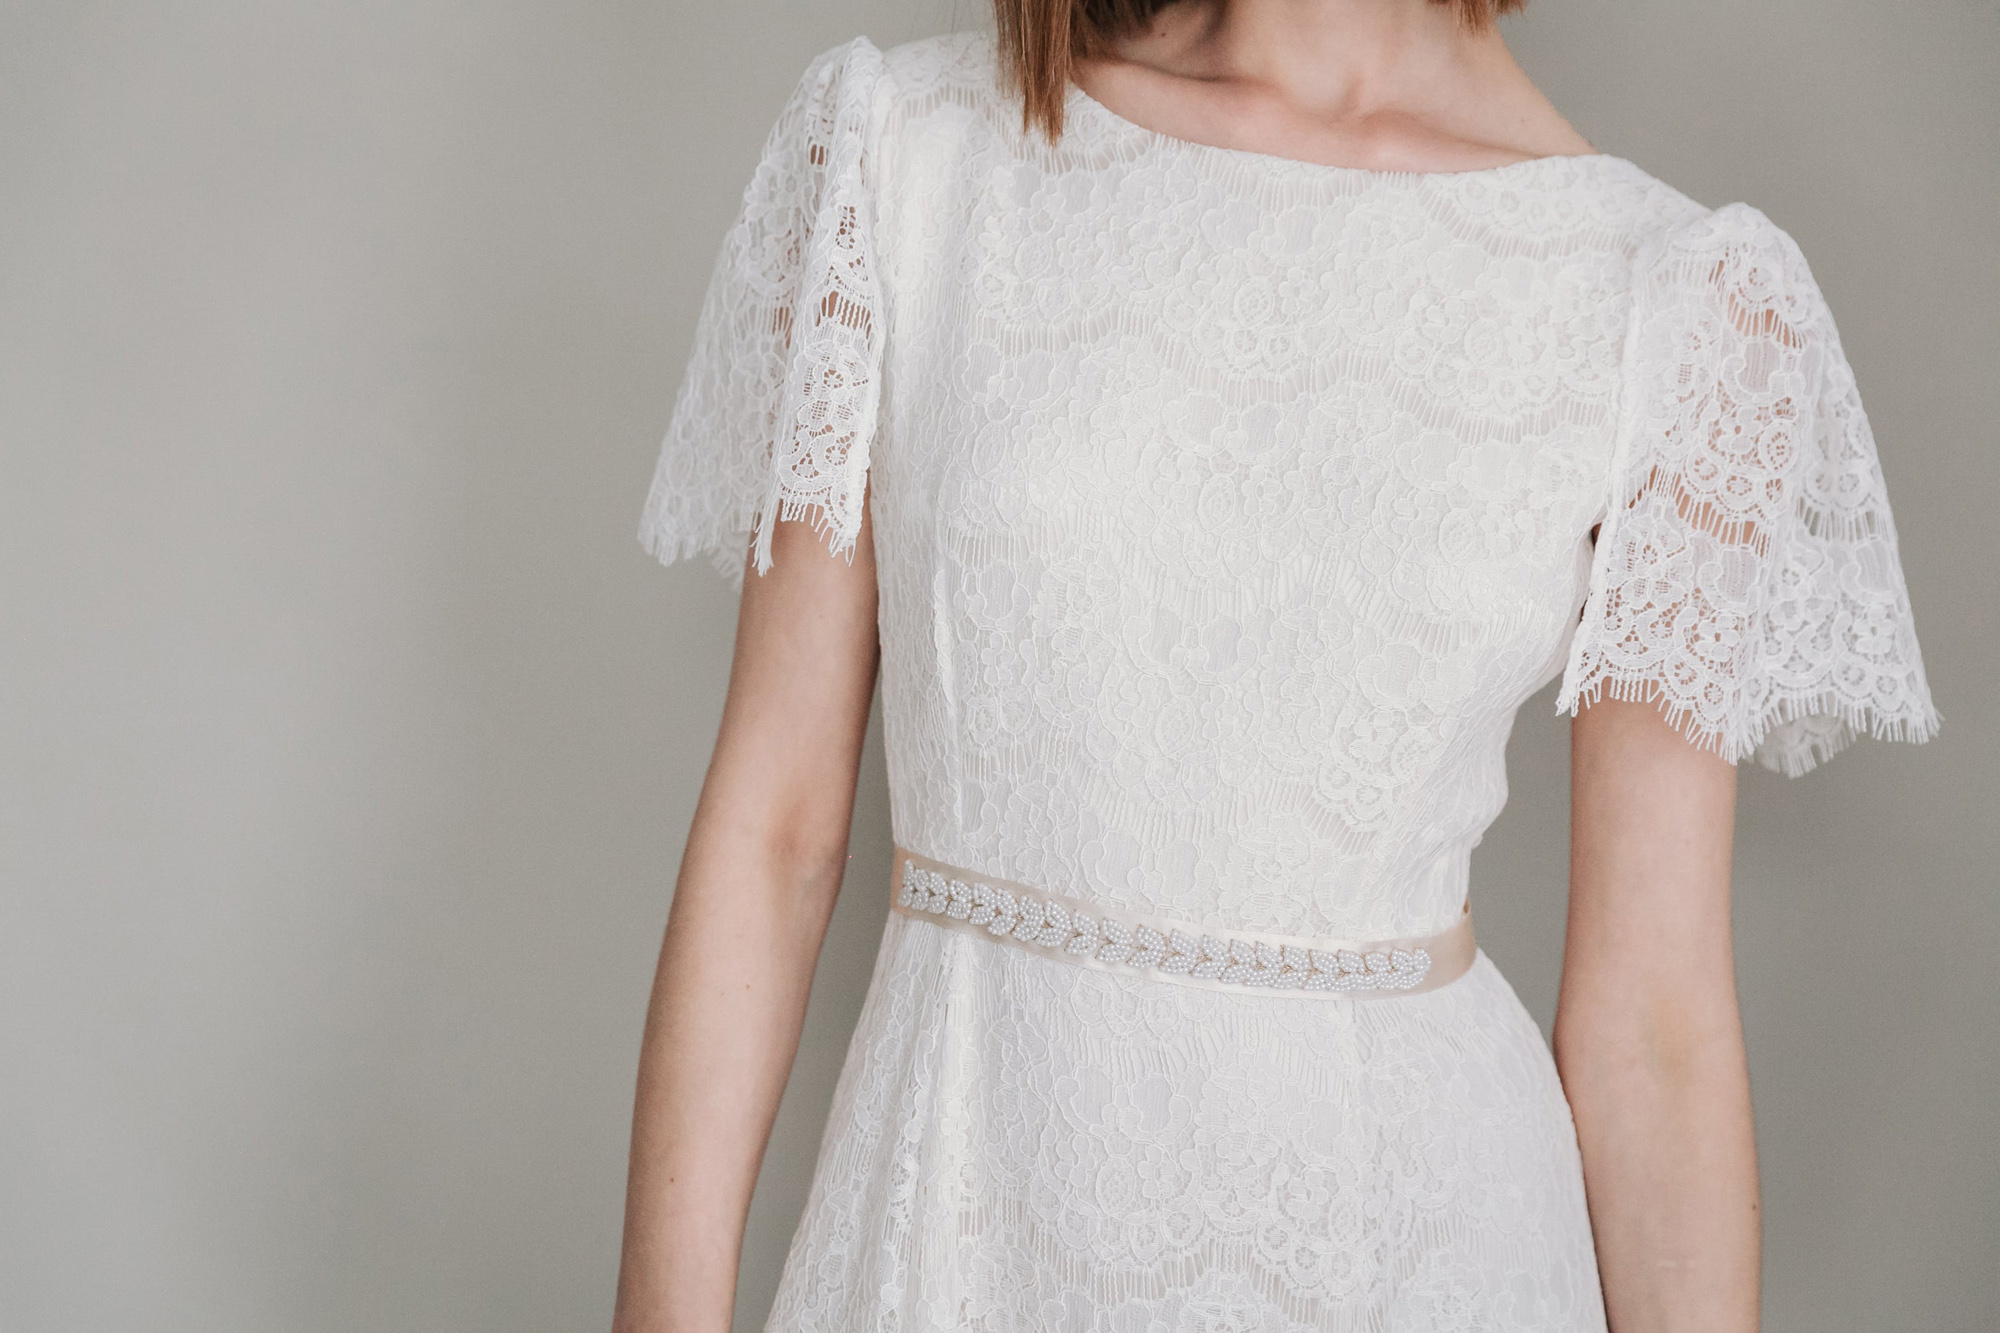 Kate-Beaumont-Sheffield-Bohemian-Dahlia-Panelled-Lace-Silk-Wedding-Gown-11.jpg